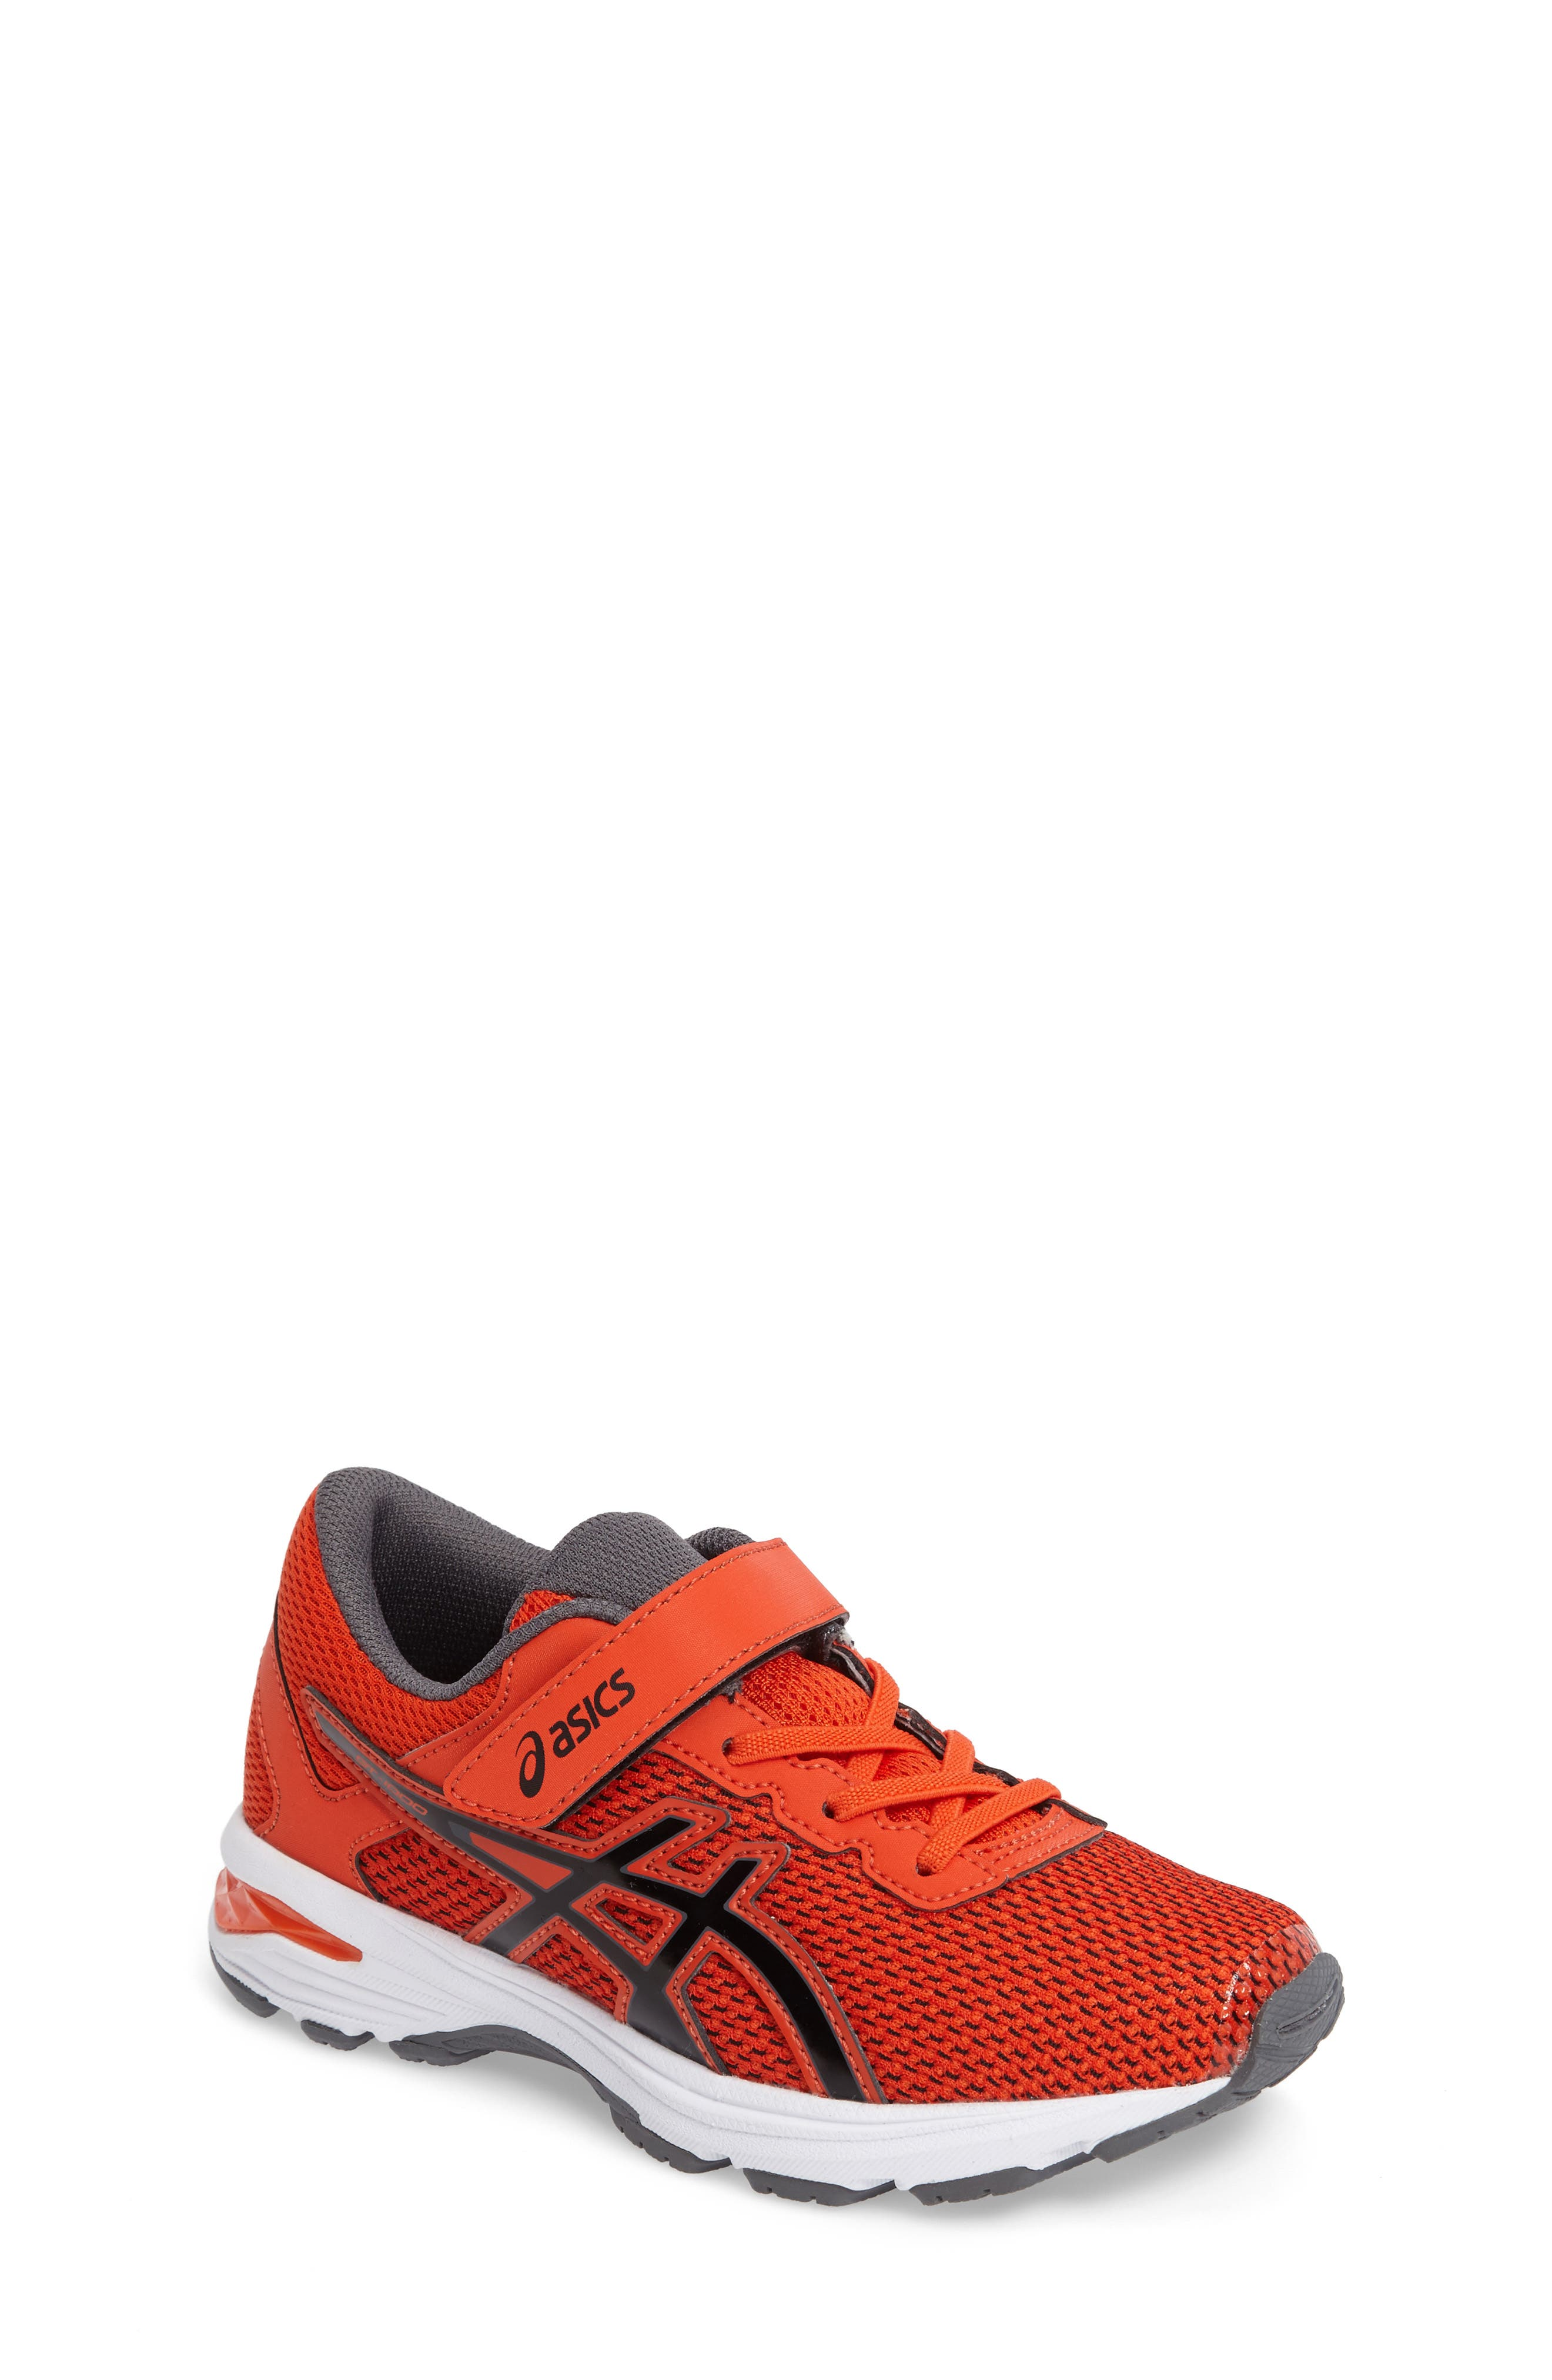 Alternate Image 1 Selected - Asics GT-1000™ 6 PS Sneaker (Toddler & Little Kid)